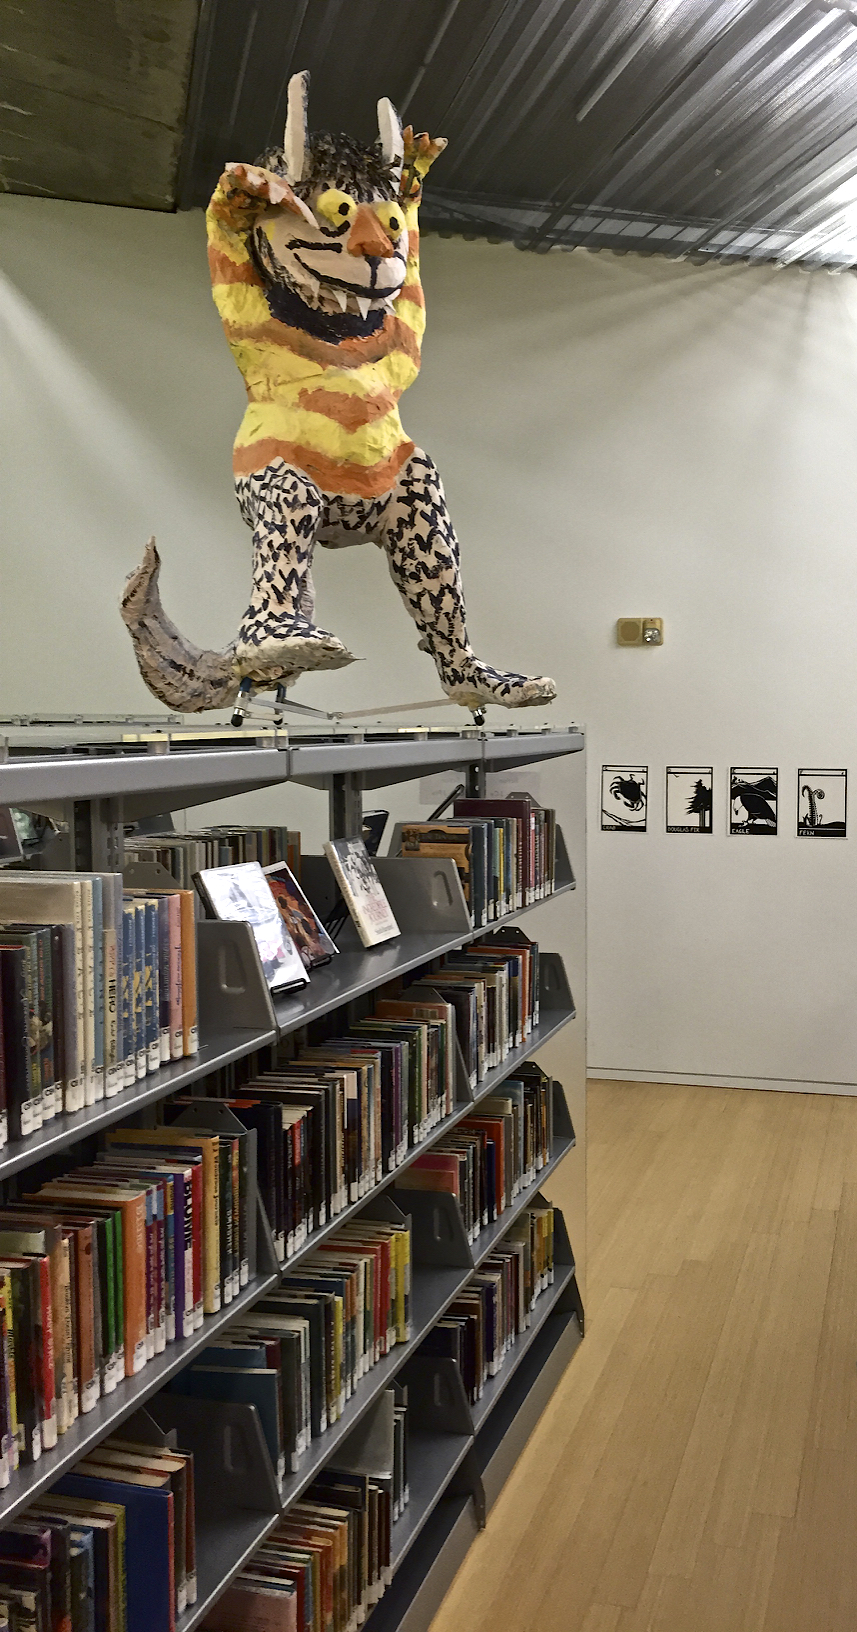 Meandering through the Seattle Central Public Library on www.CompulsivelyQuirky.com